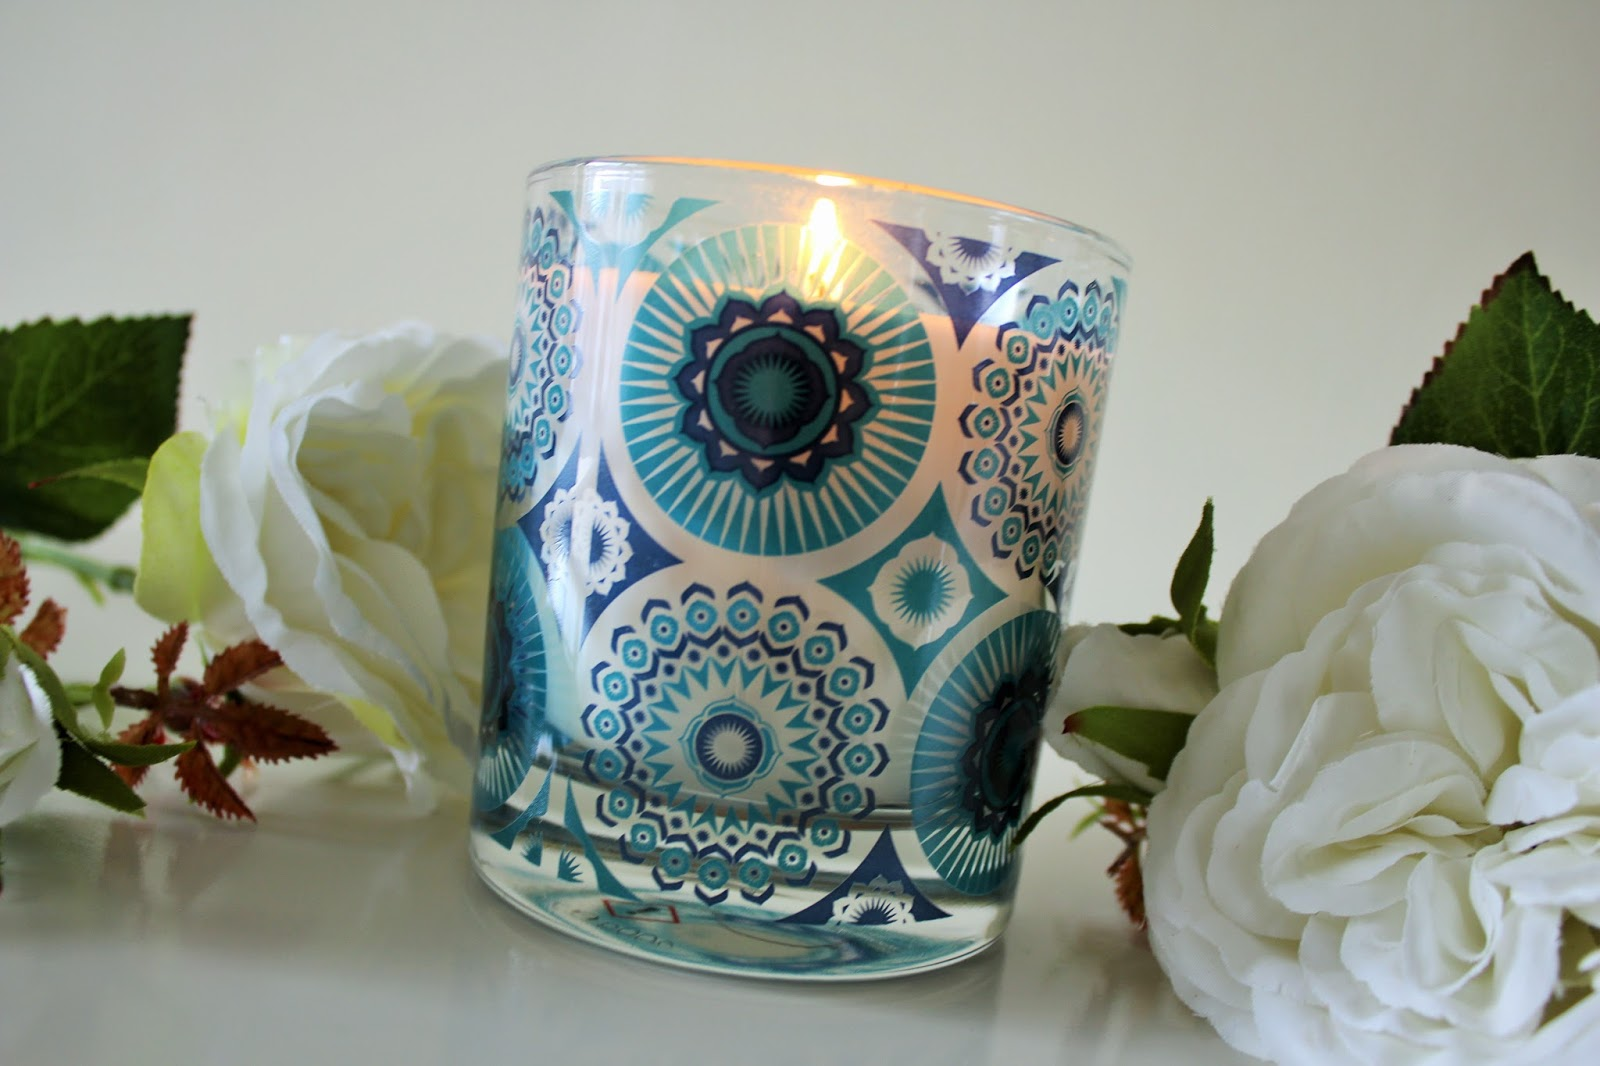 April Favourites 2017 - Mini Moderns Darjeeling Scented Candle